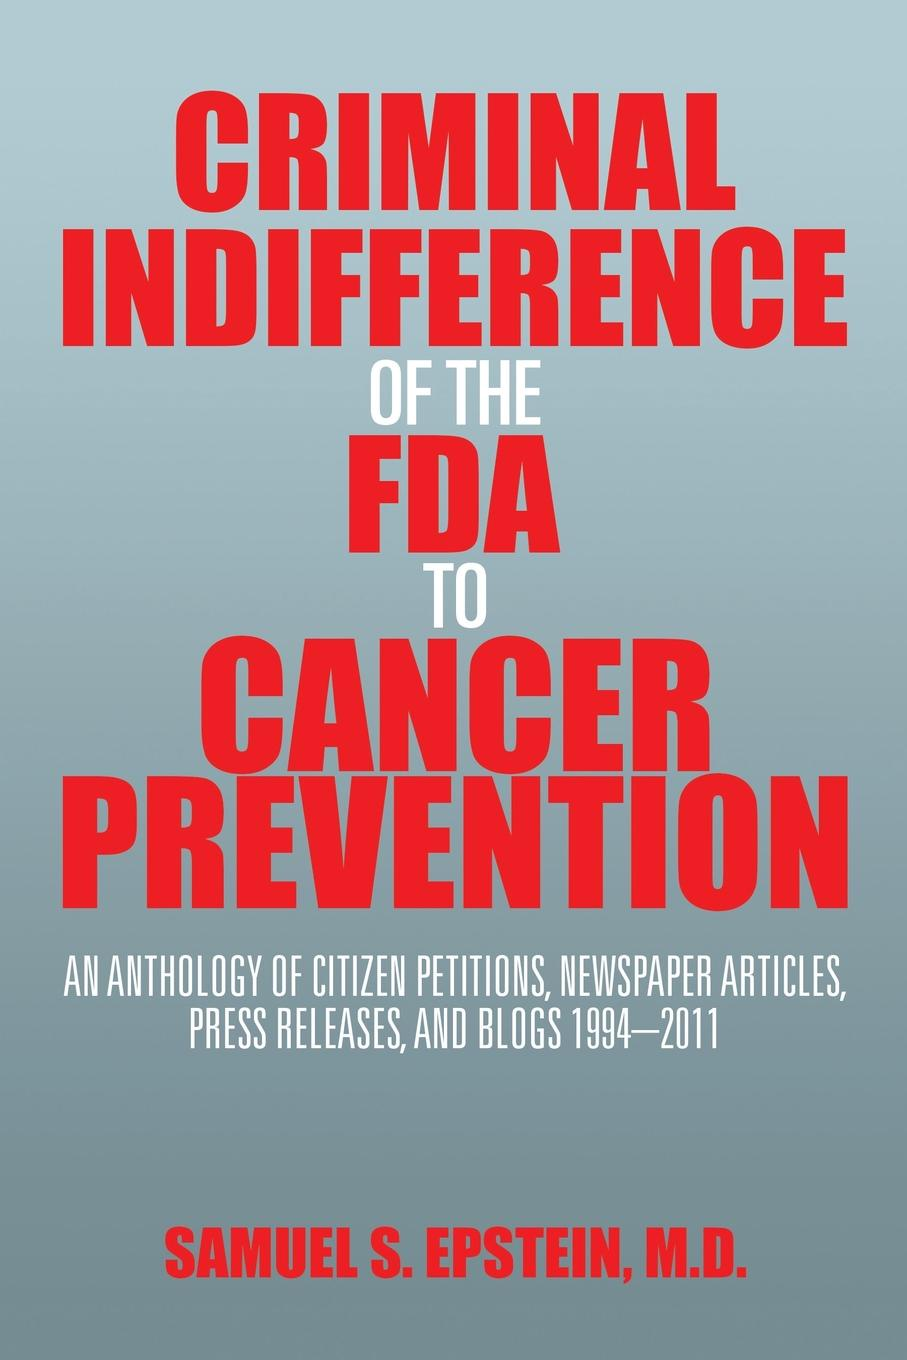 Samuel S. Epstein M.D. Criminal Indifference of the FDA to Cancer Prevention. An Anthology Citizen Petitions, Newspaper Articles, Press Releases, and Blogs 1994-2011